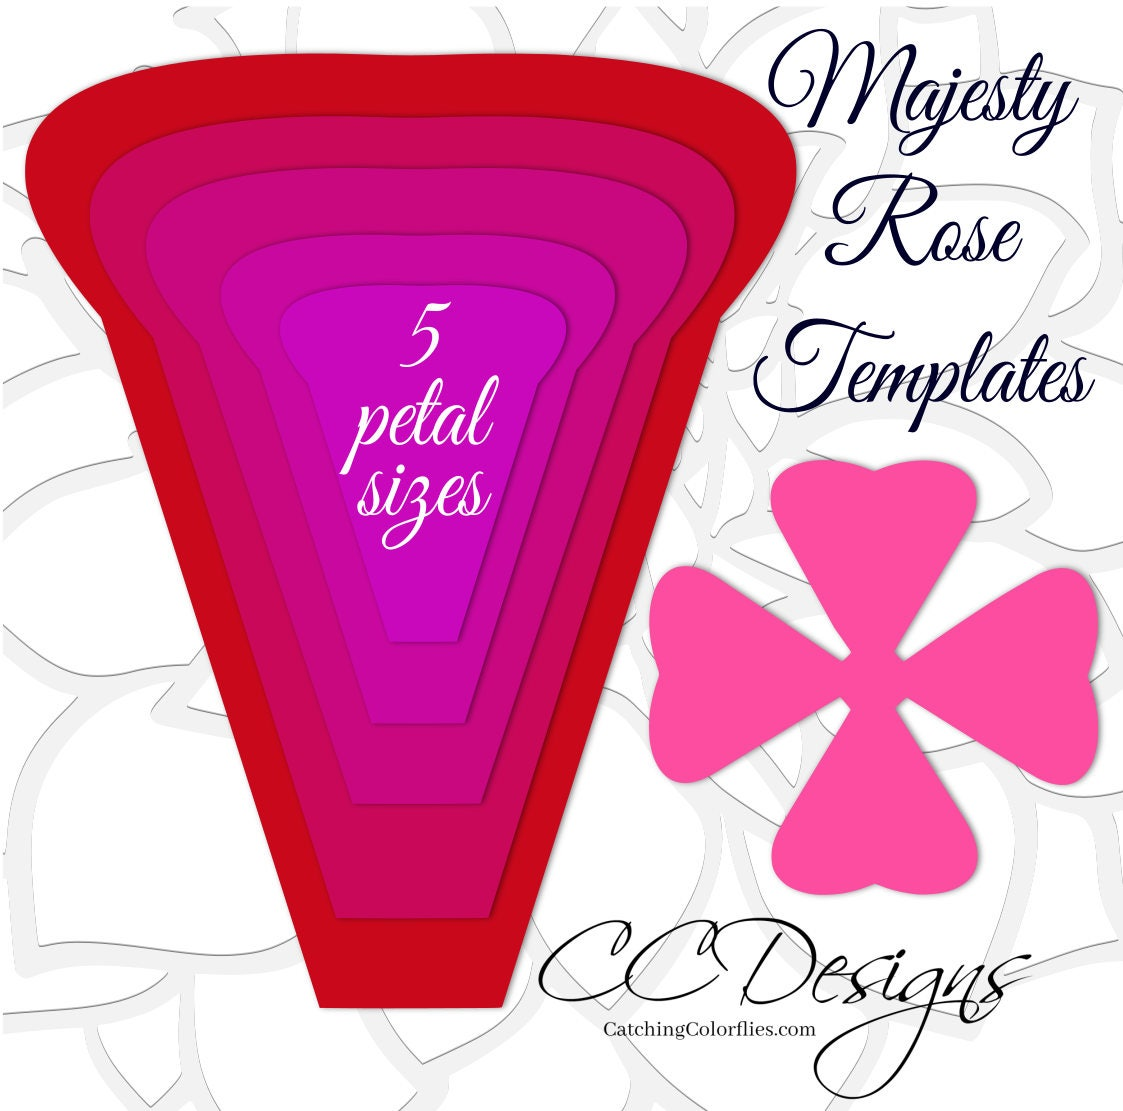 It's just a picture of Inventive Paper Rose Template Printable